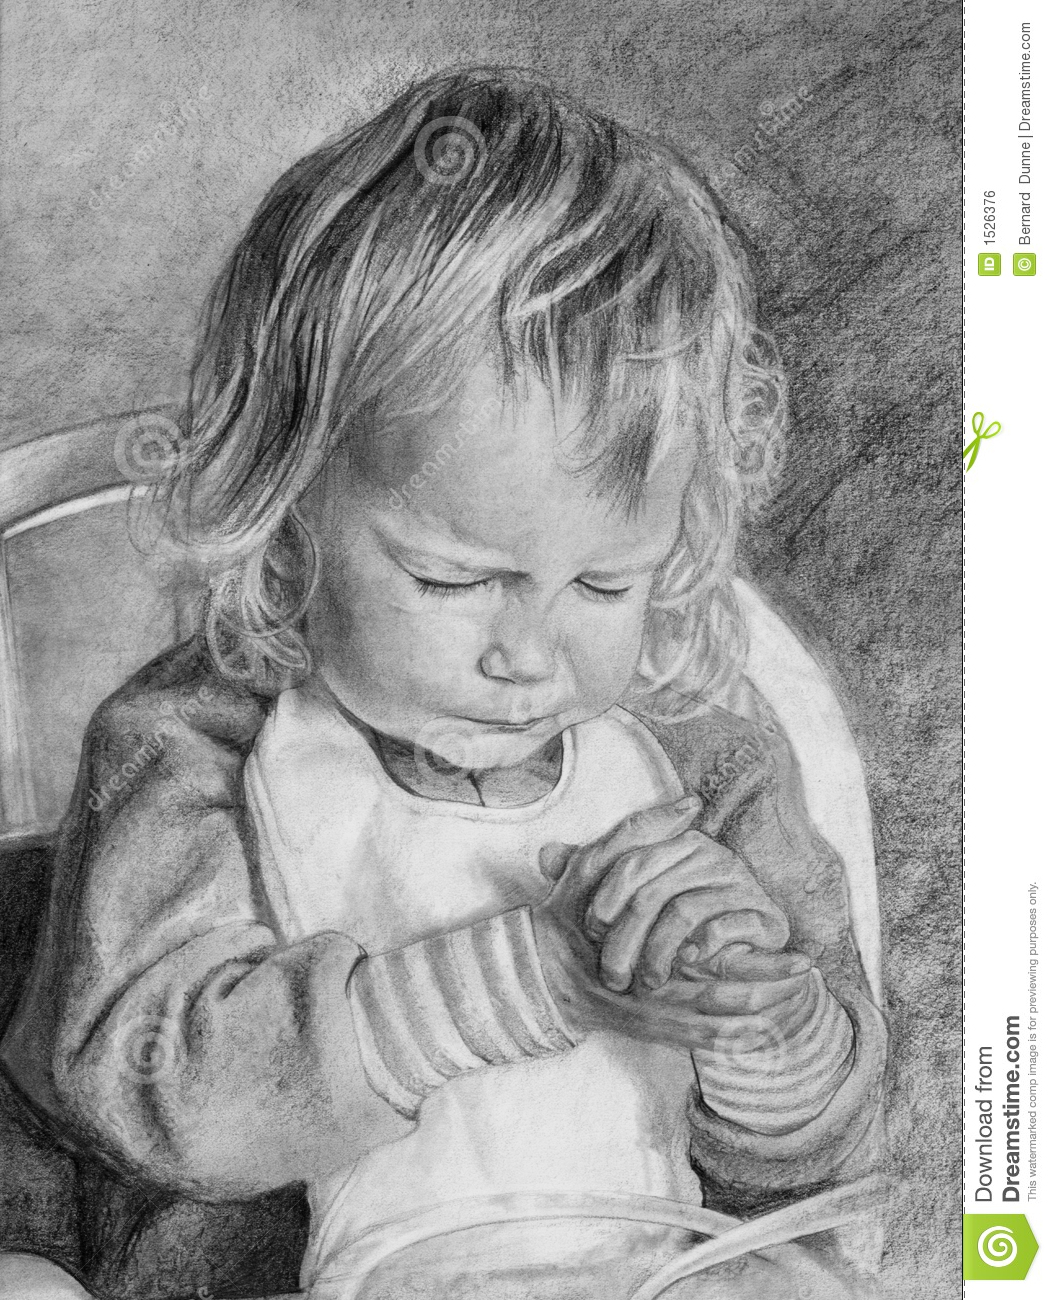 Children Praying Hands Clipart Child praying over meal in